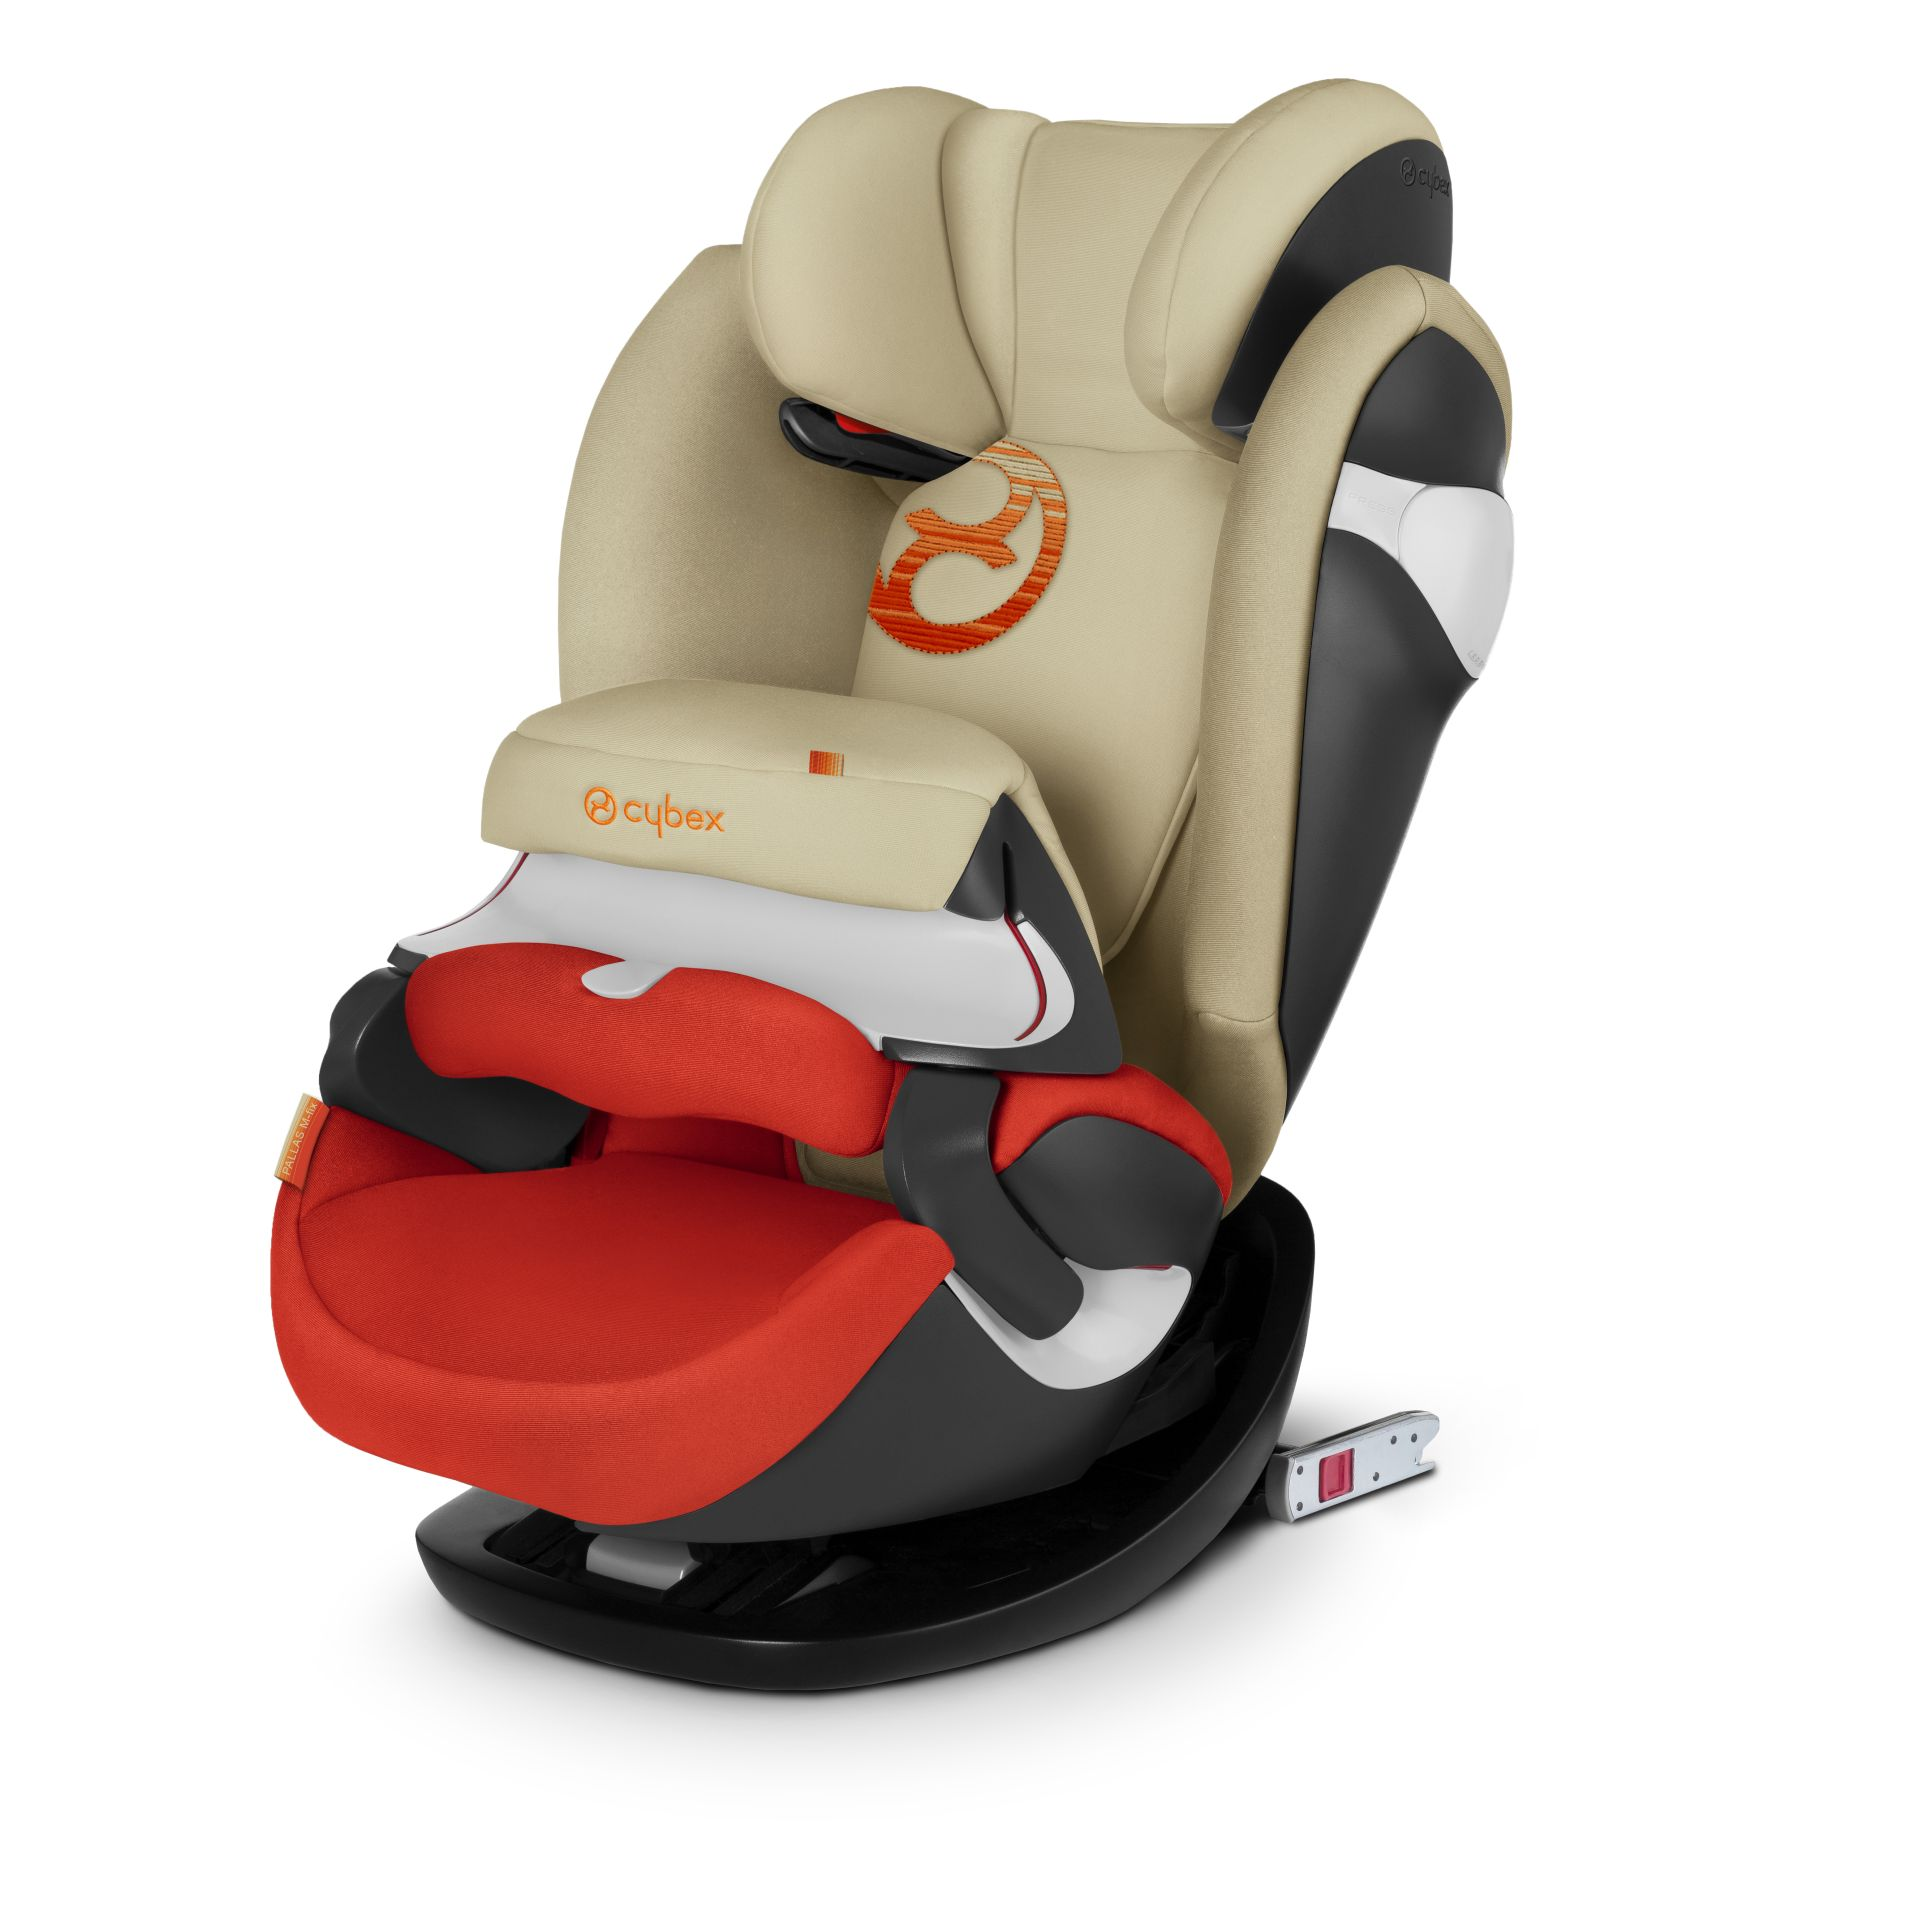 cybex child car seat pallas m fix 2018 autumn gold burnt red 2018 buy at kidsroom car seats uk. Black Bedroom Furniture Sets. Home Design Ideas